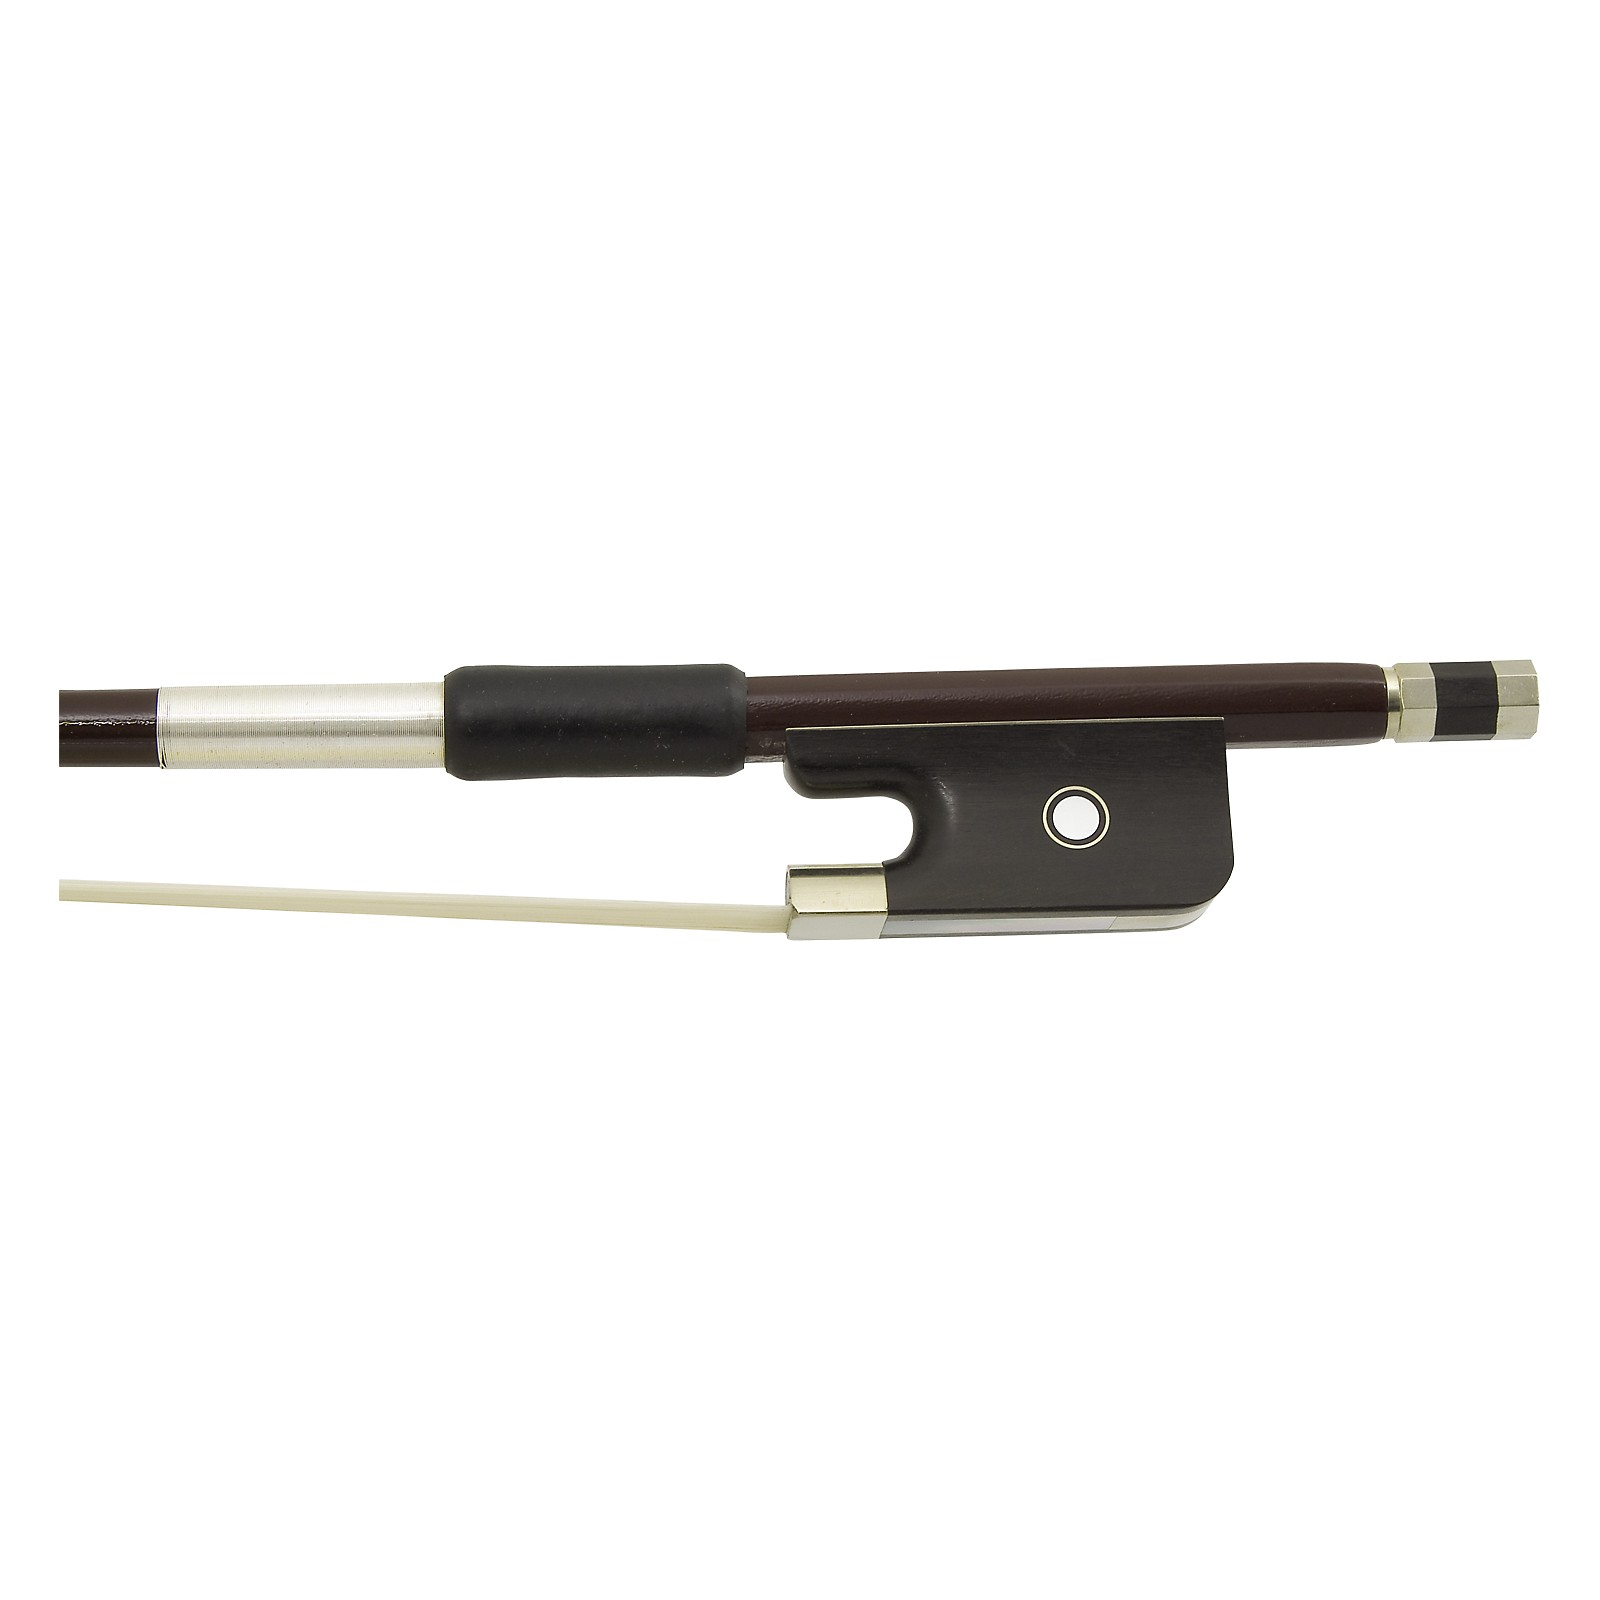 Glasser Bass Bow French Advanced Composite, Fully-Lined Ebony Frog, Nickel Wire Grip